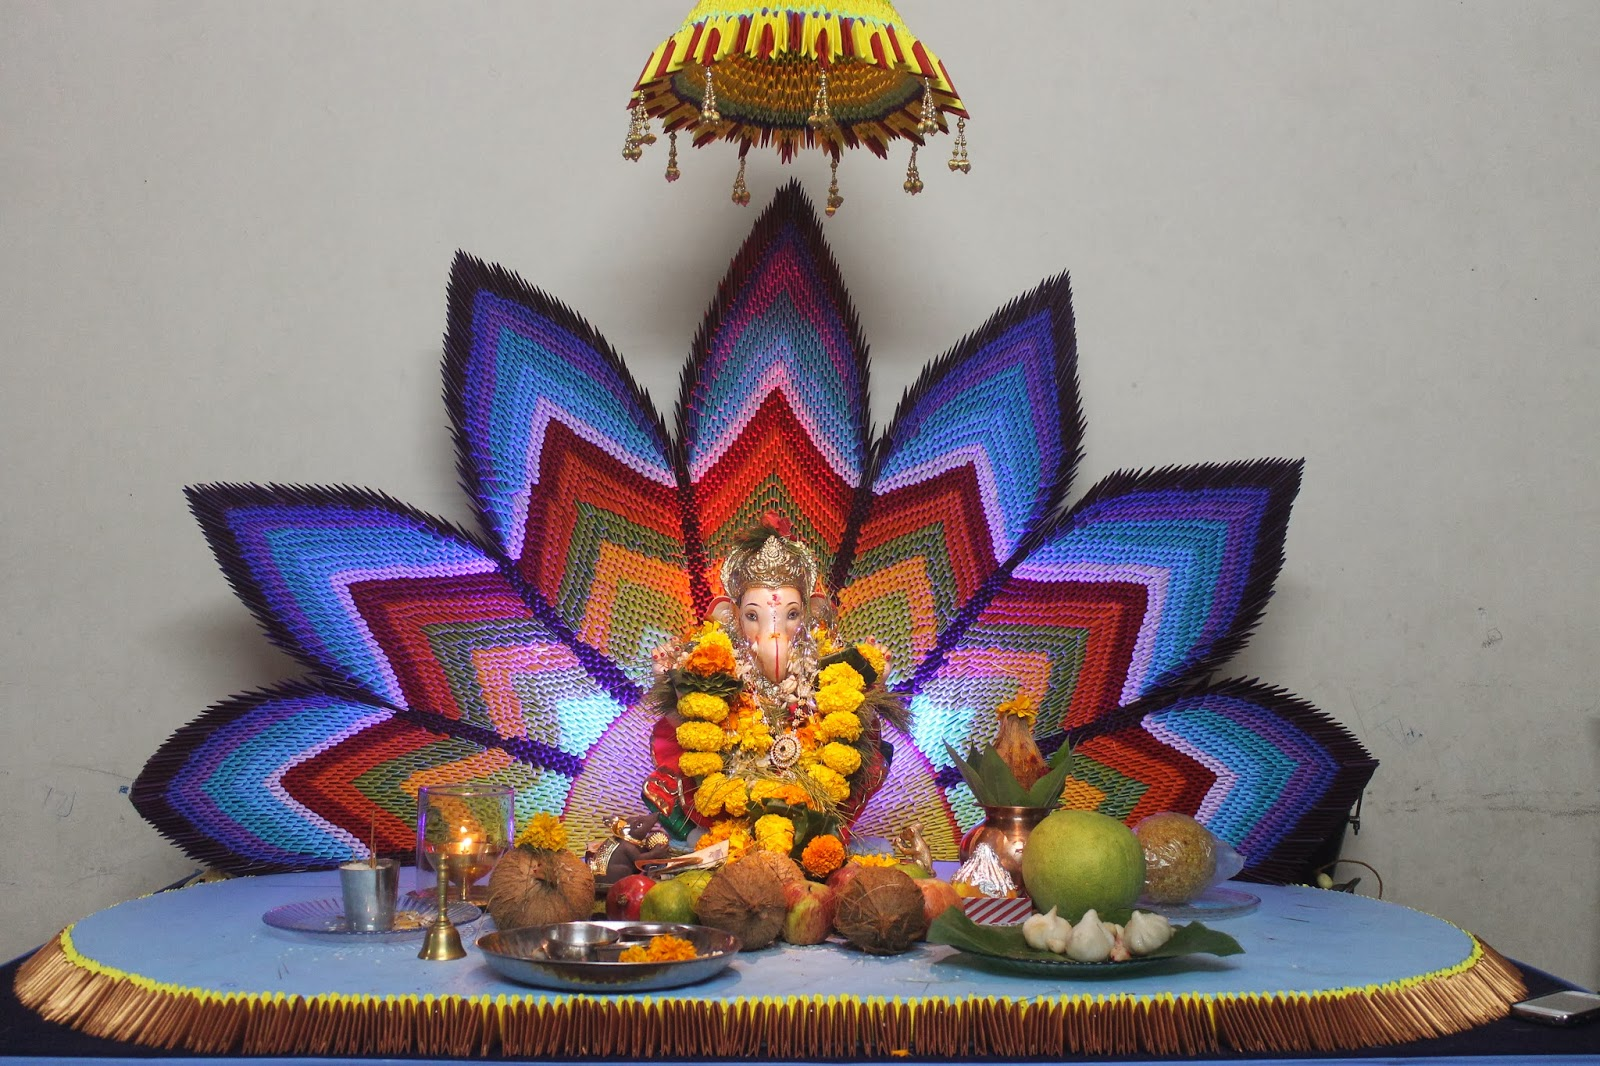 Ecofriendly decoration ashwini manjure jpg 1600 1200 Environmentally friendly decorations